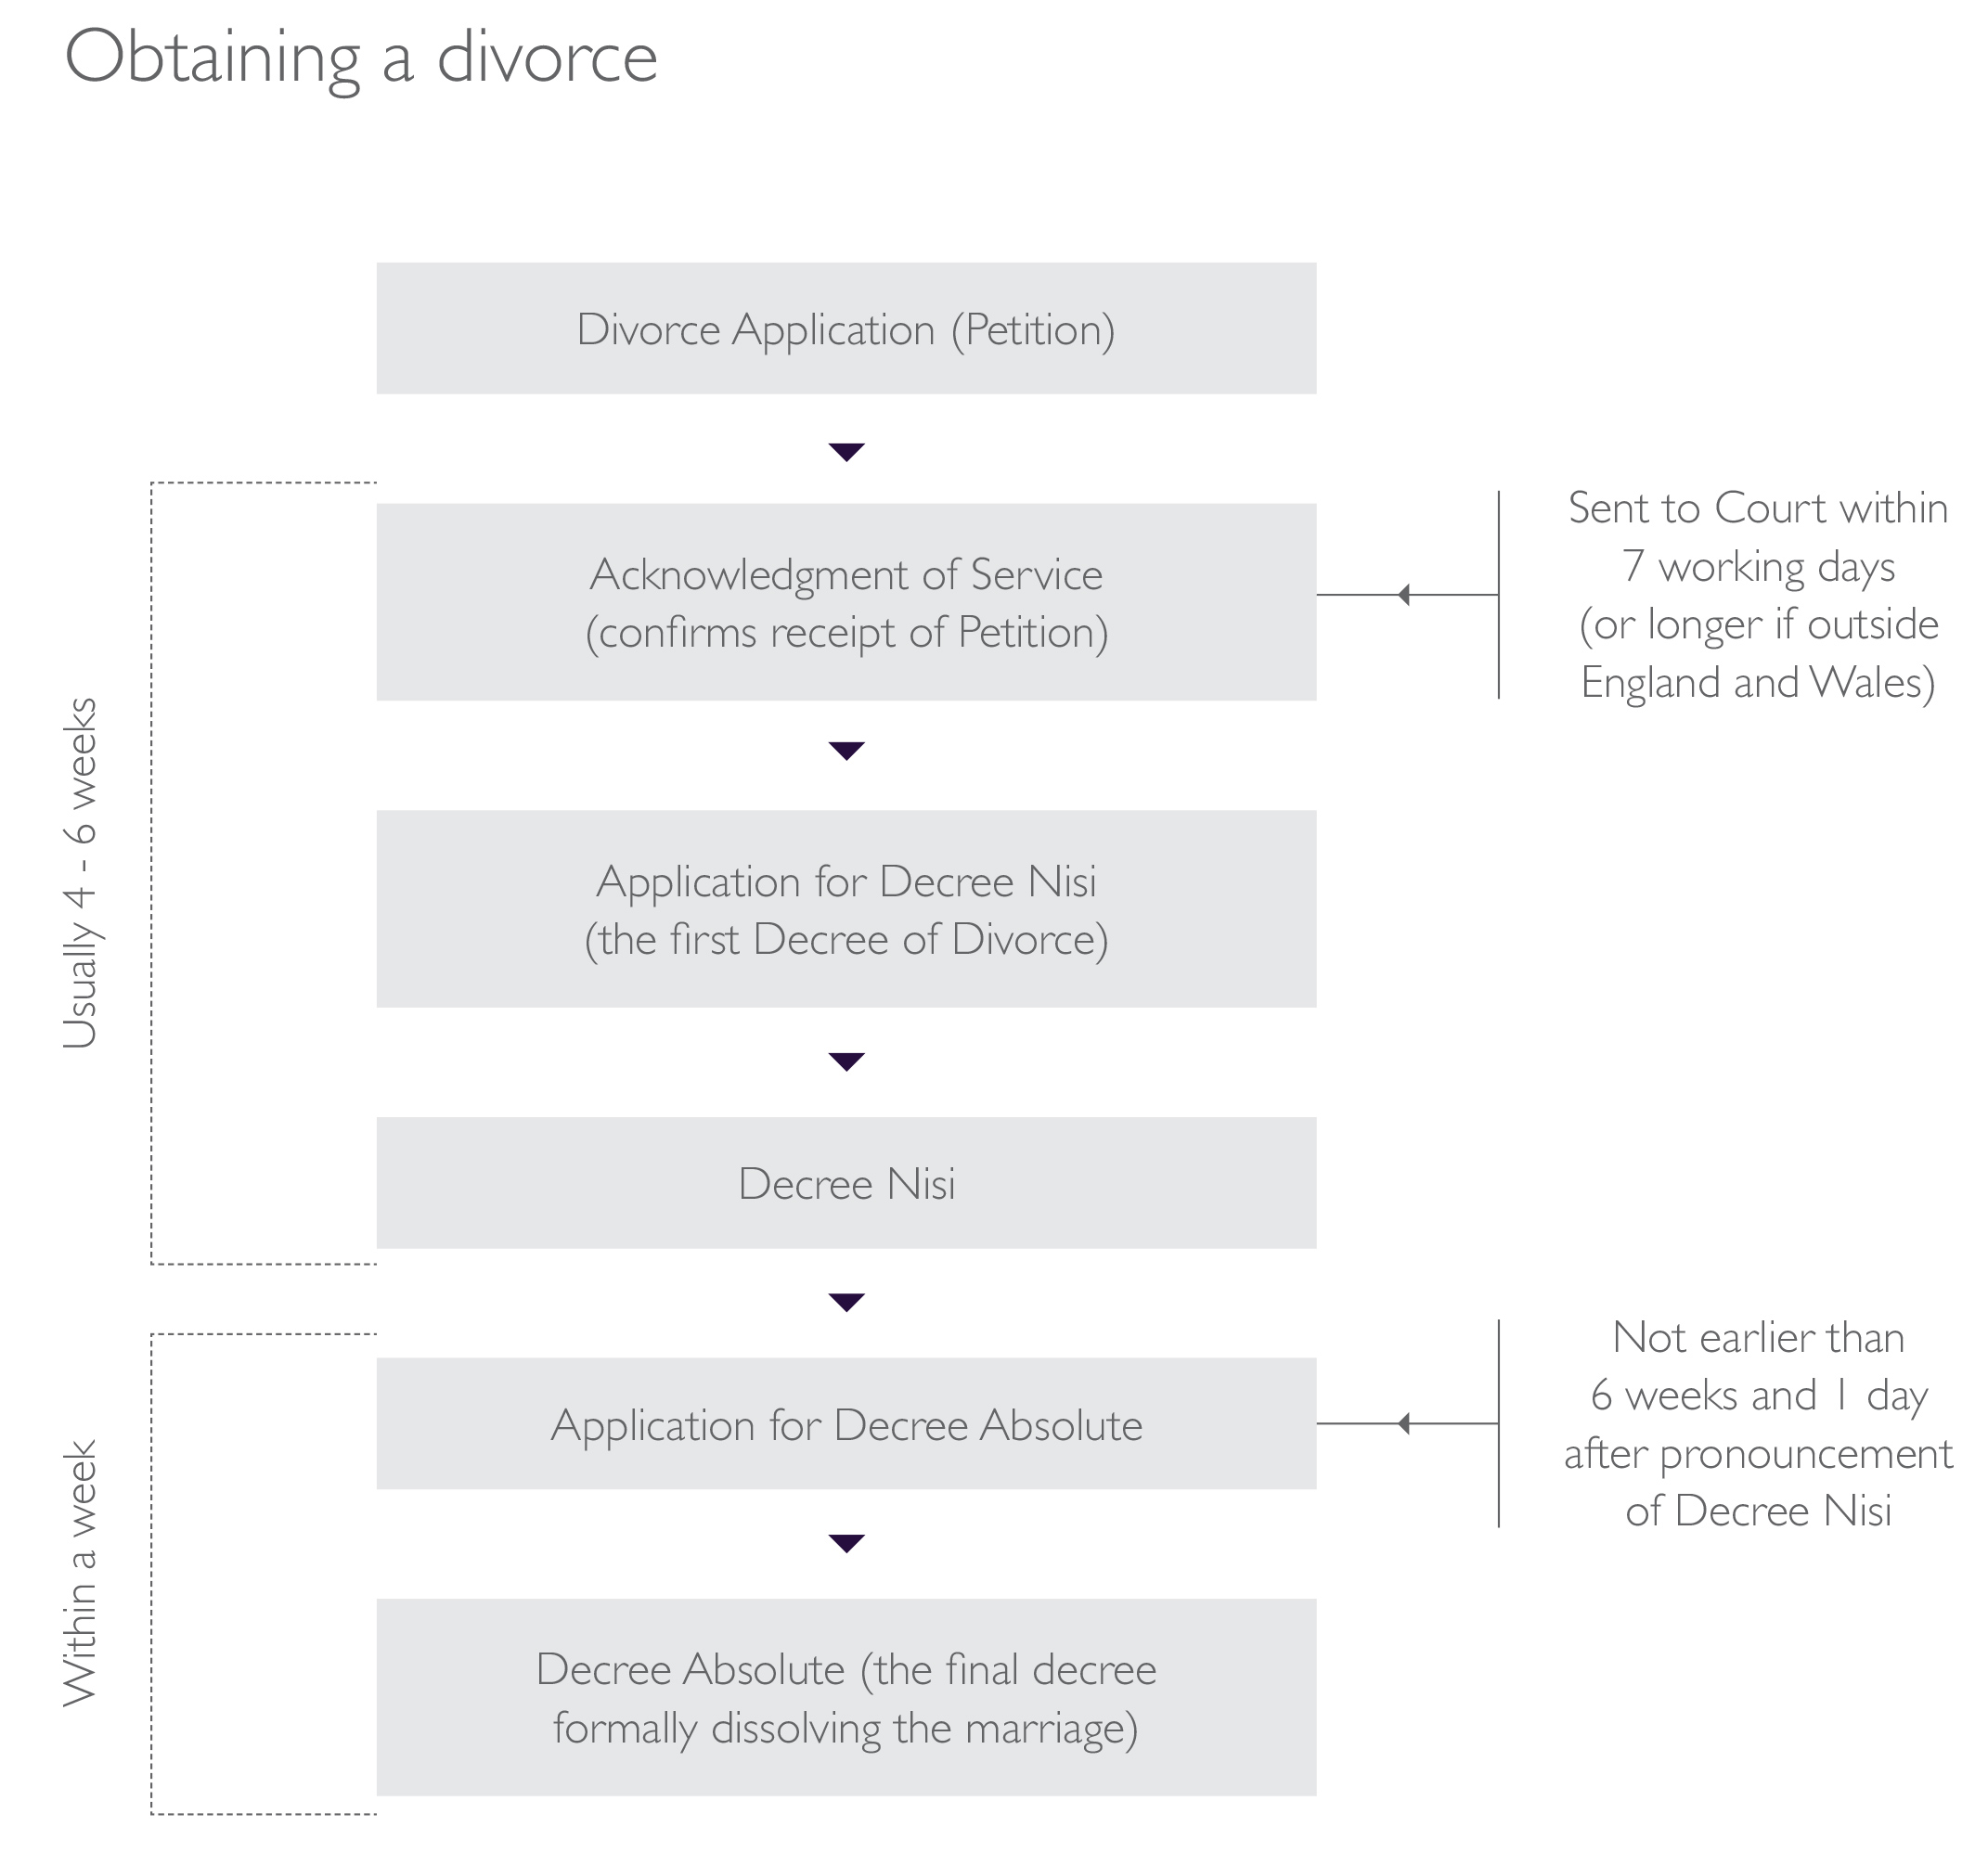 Procedure for obtaining a divorce flowchart.